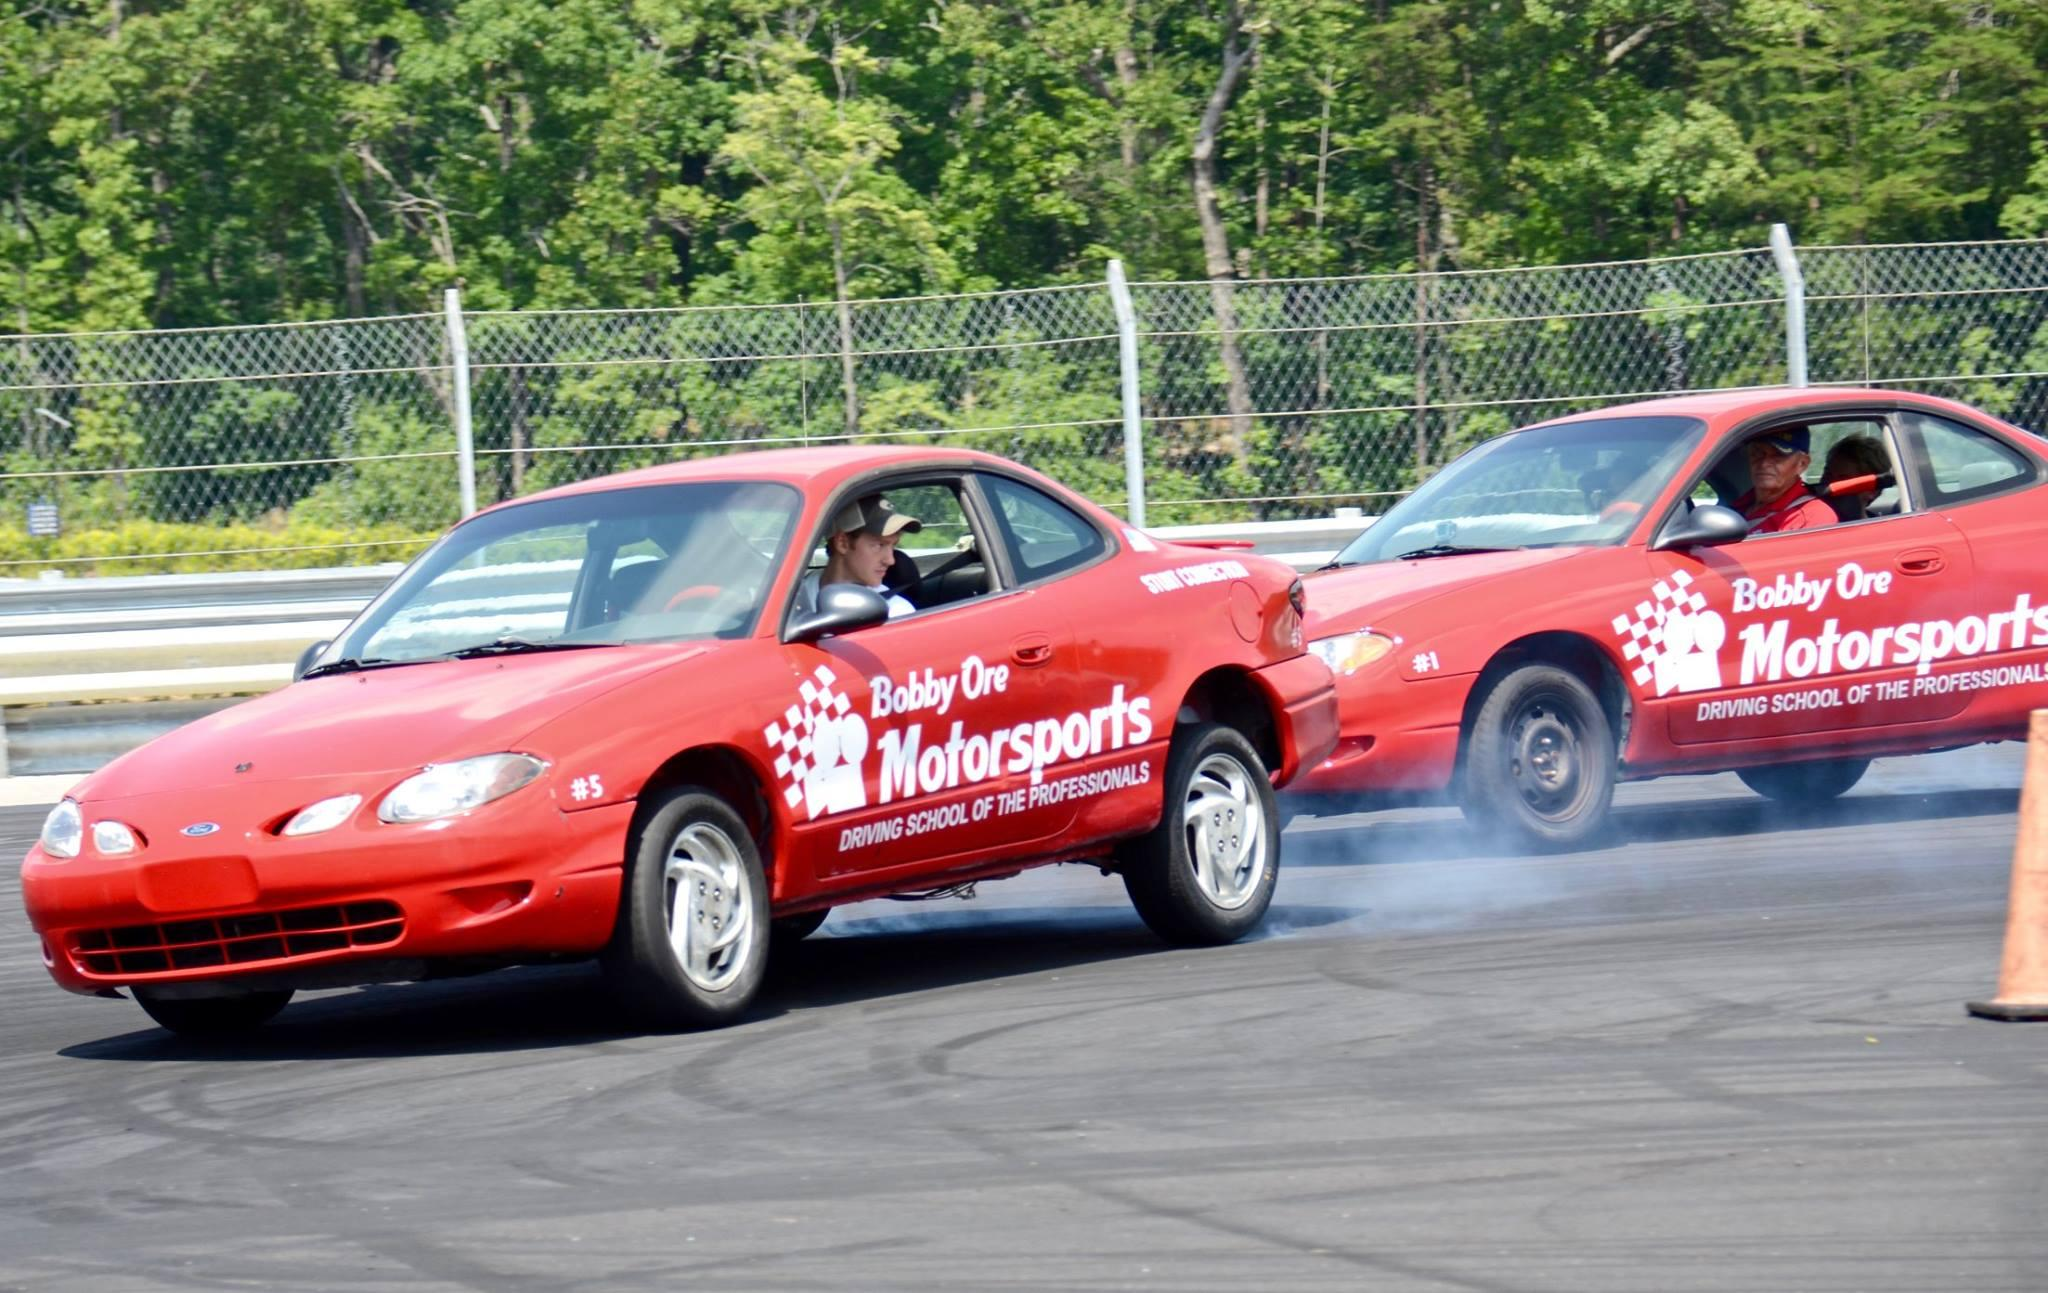 Stunt Driving School >> Racing To Catch Up With Atlanta S Film Industry Georgia Public